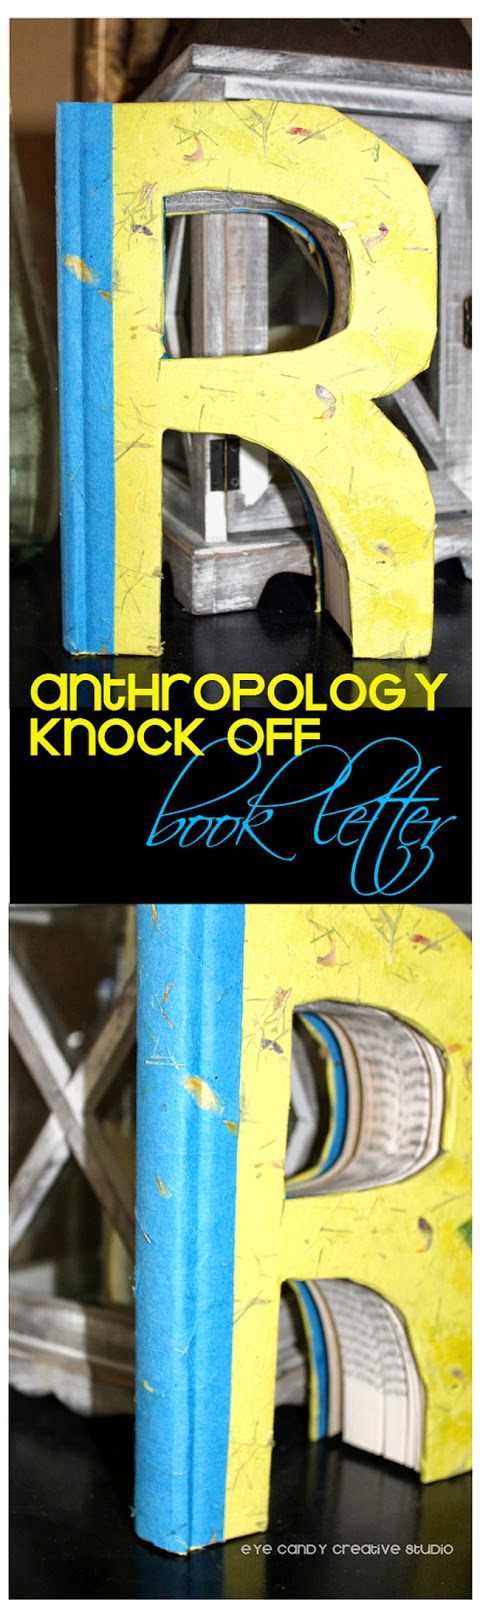 old book project, anthropology hack, book craft, how to make